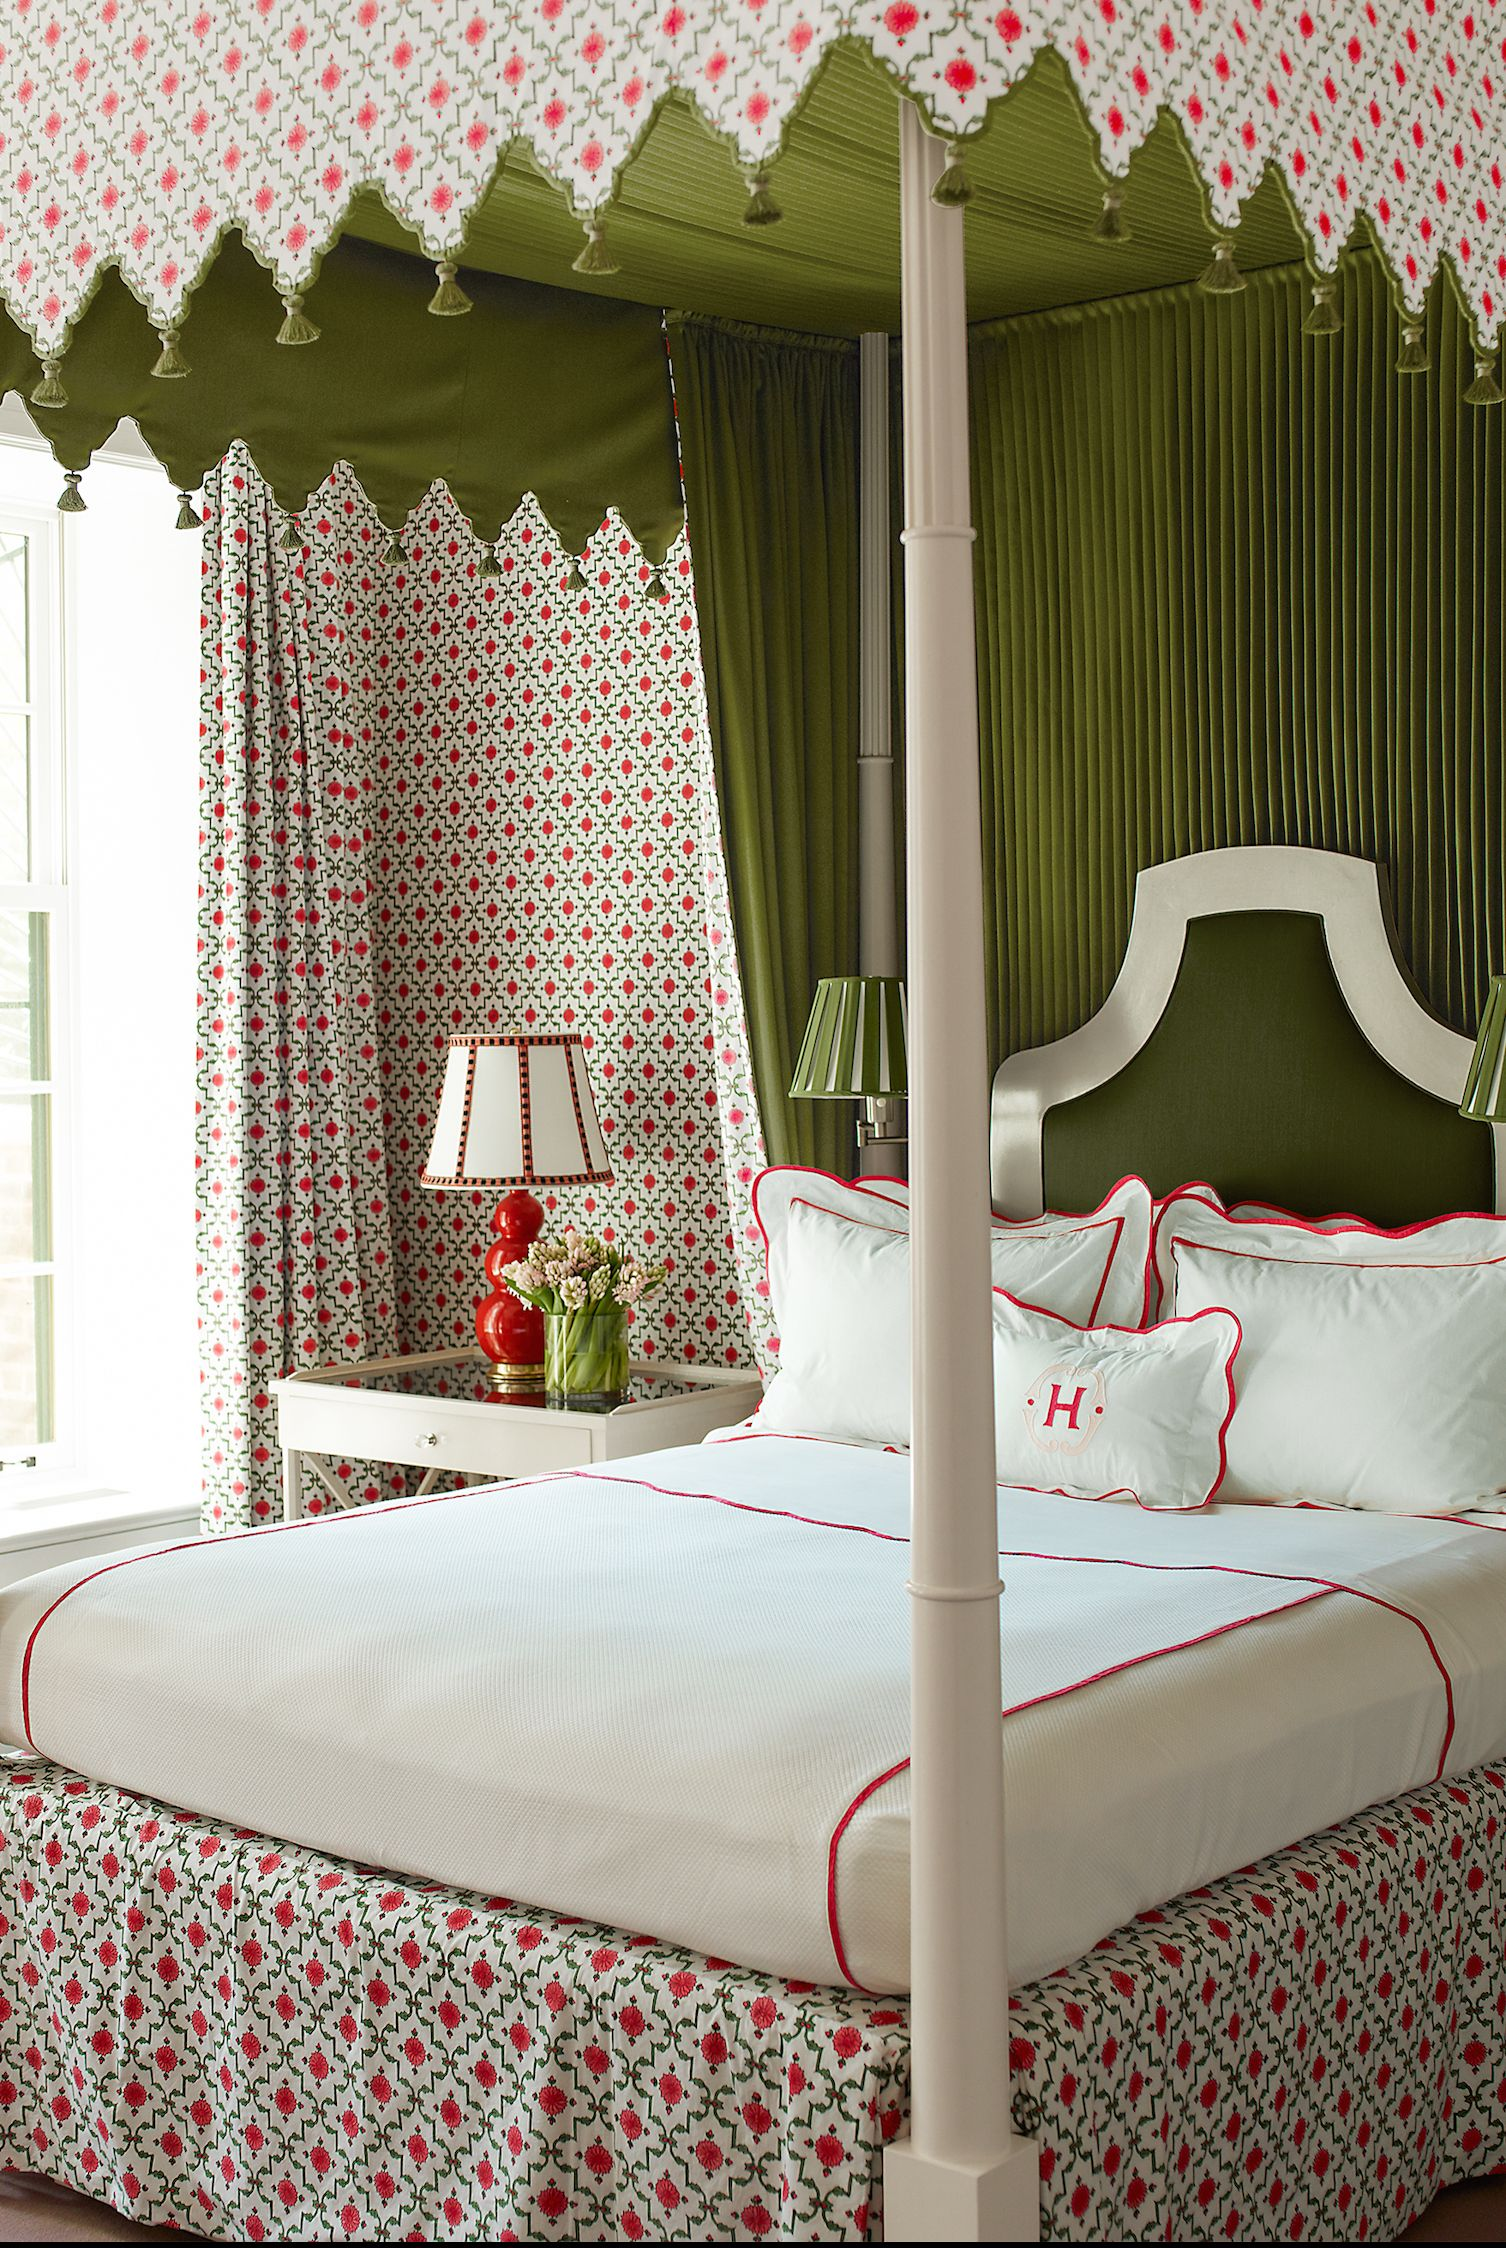 15 Creative Girls Room Ideas How To Decorate A Girl S Bedroom